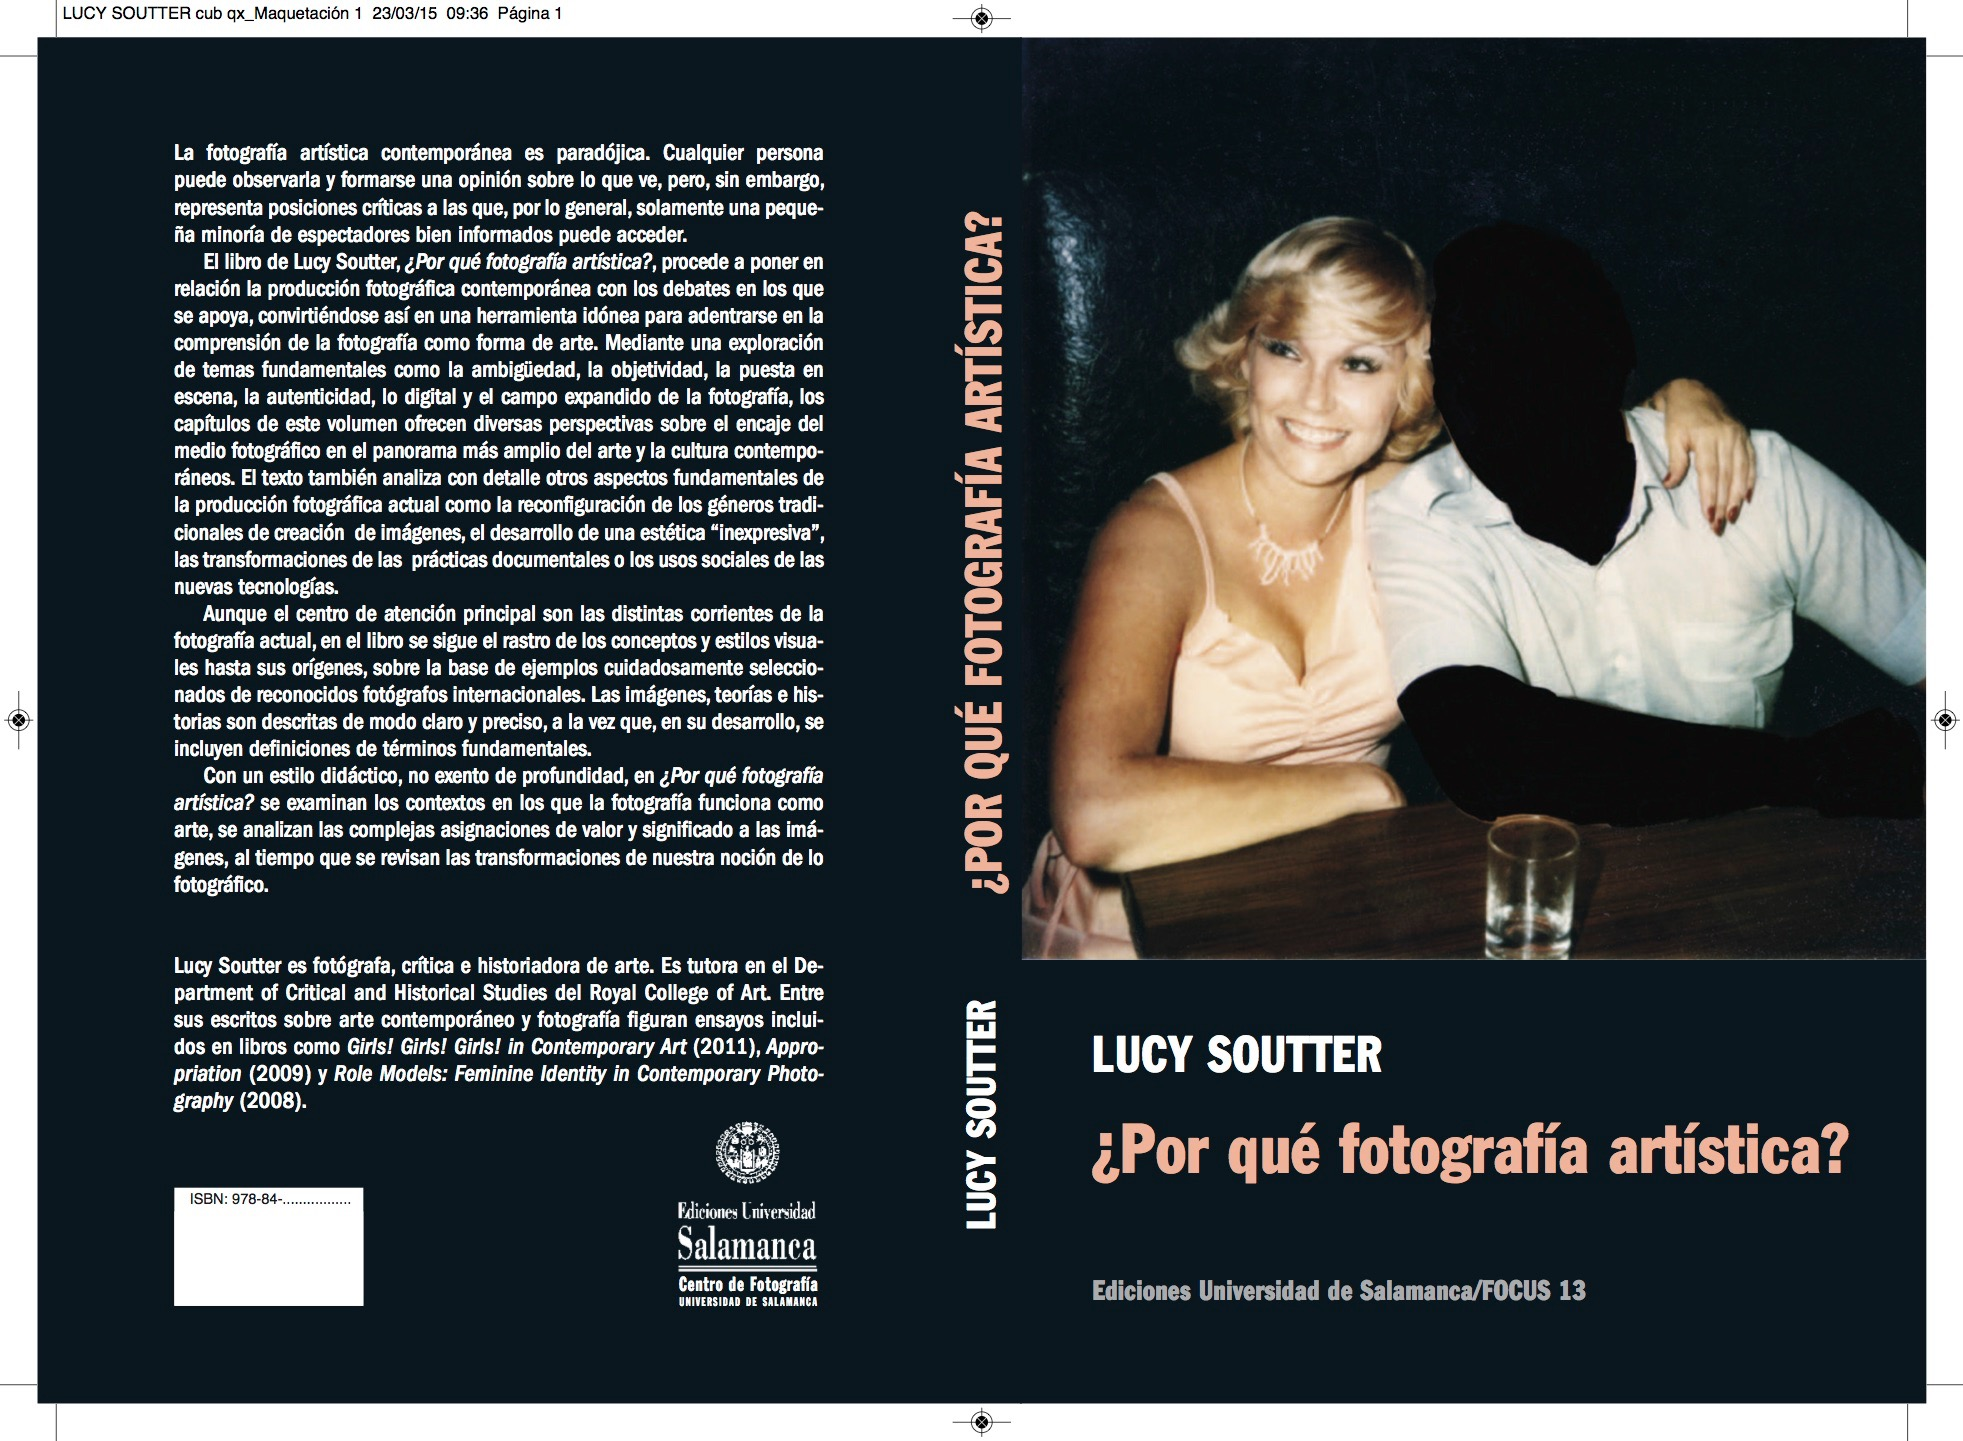 Cover Image of Why Art Photography? Spanish version